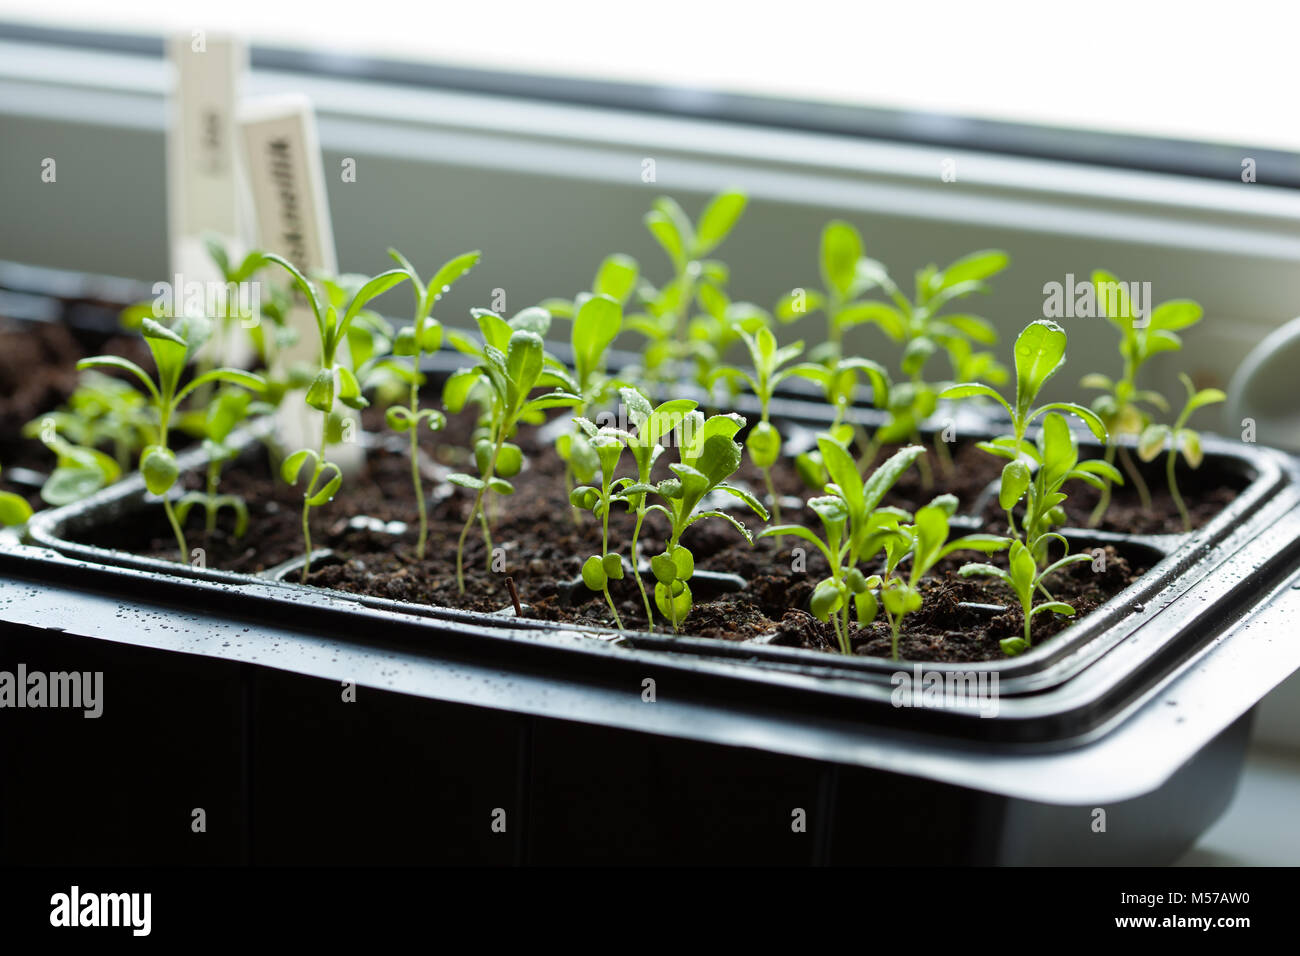 seedling plants growing in germination plastic tray - Stock Image